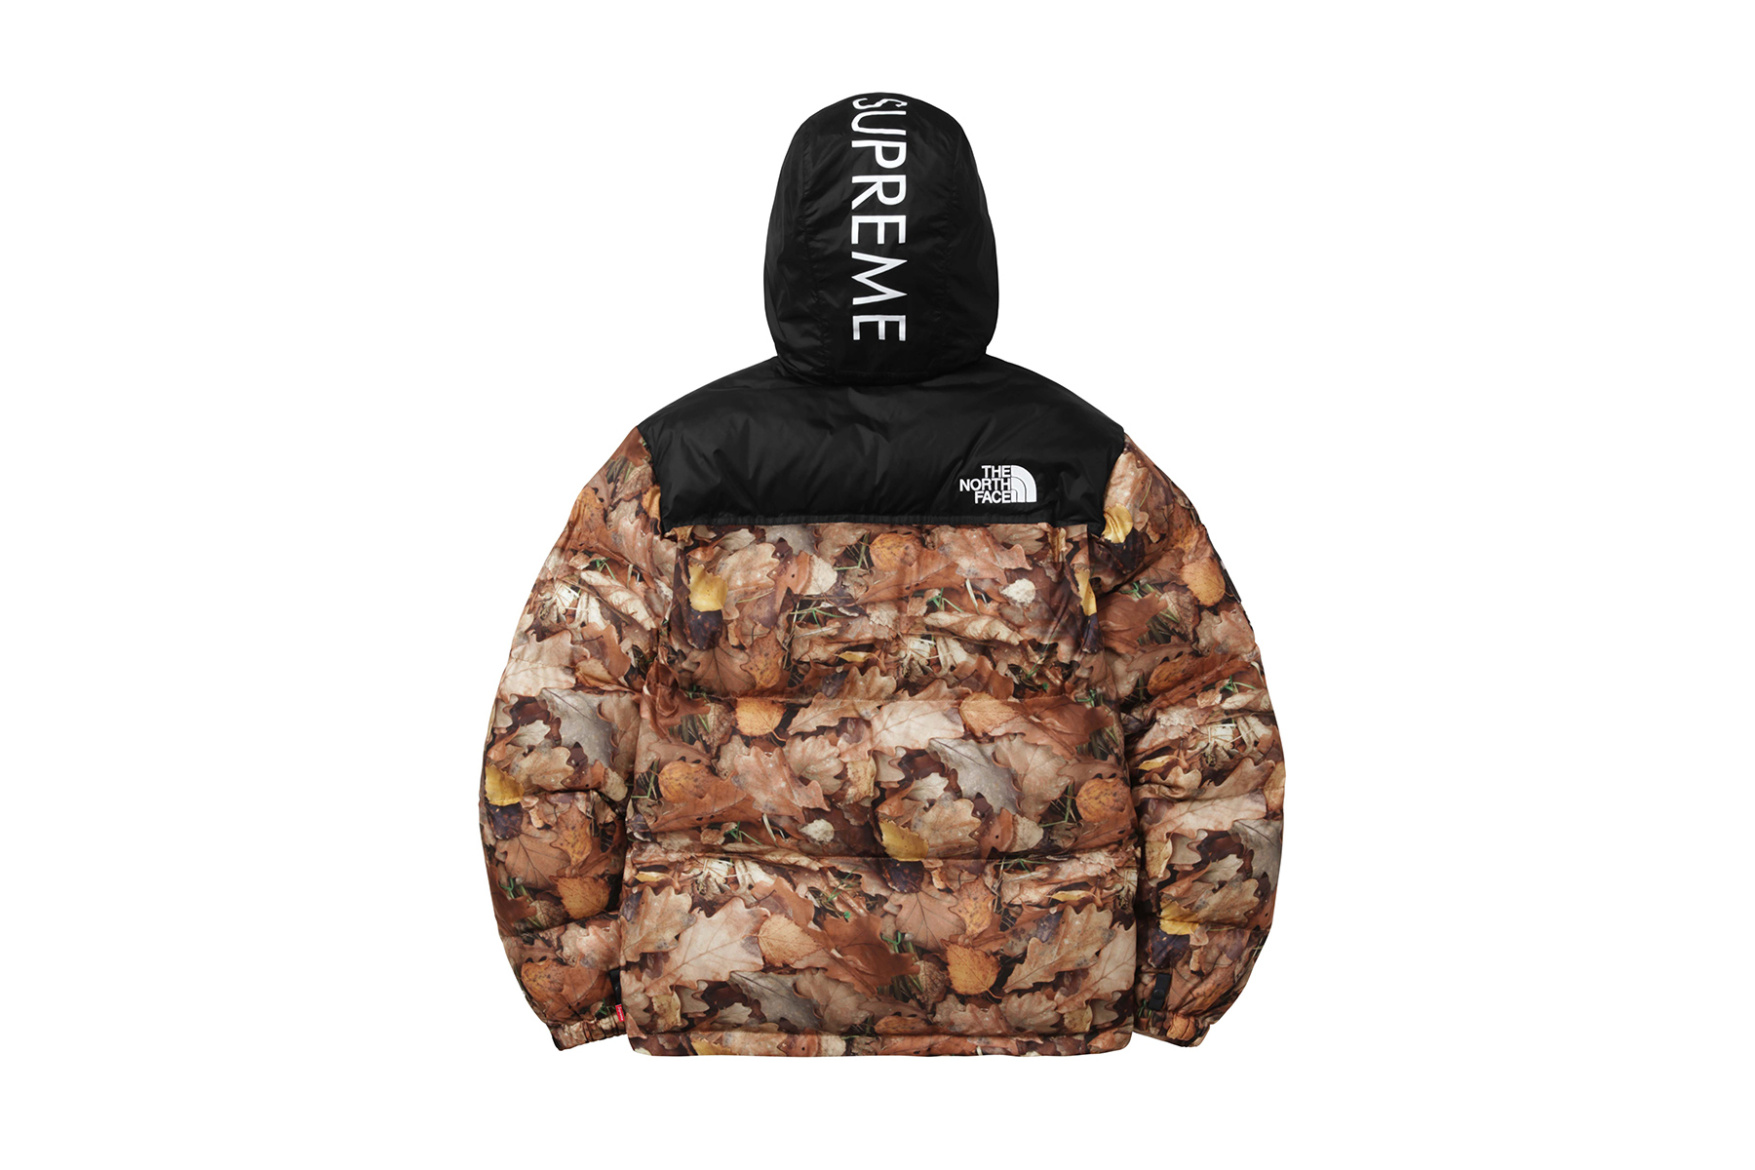 supreme-x-the-north-face-2016-fall-winter-collection-10